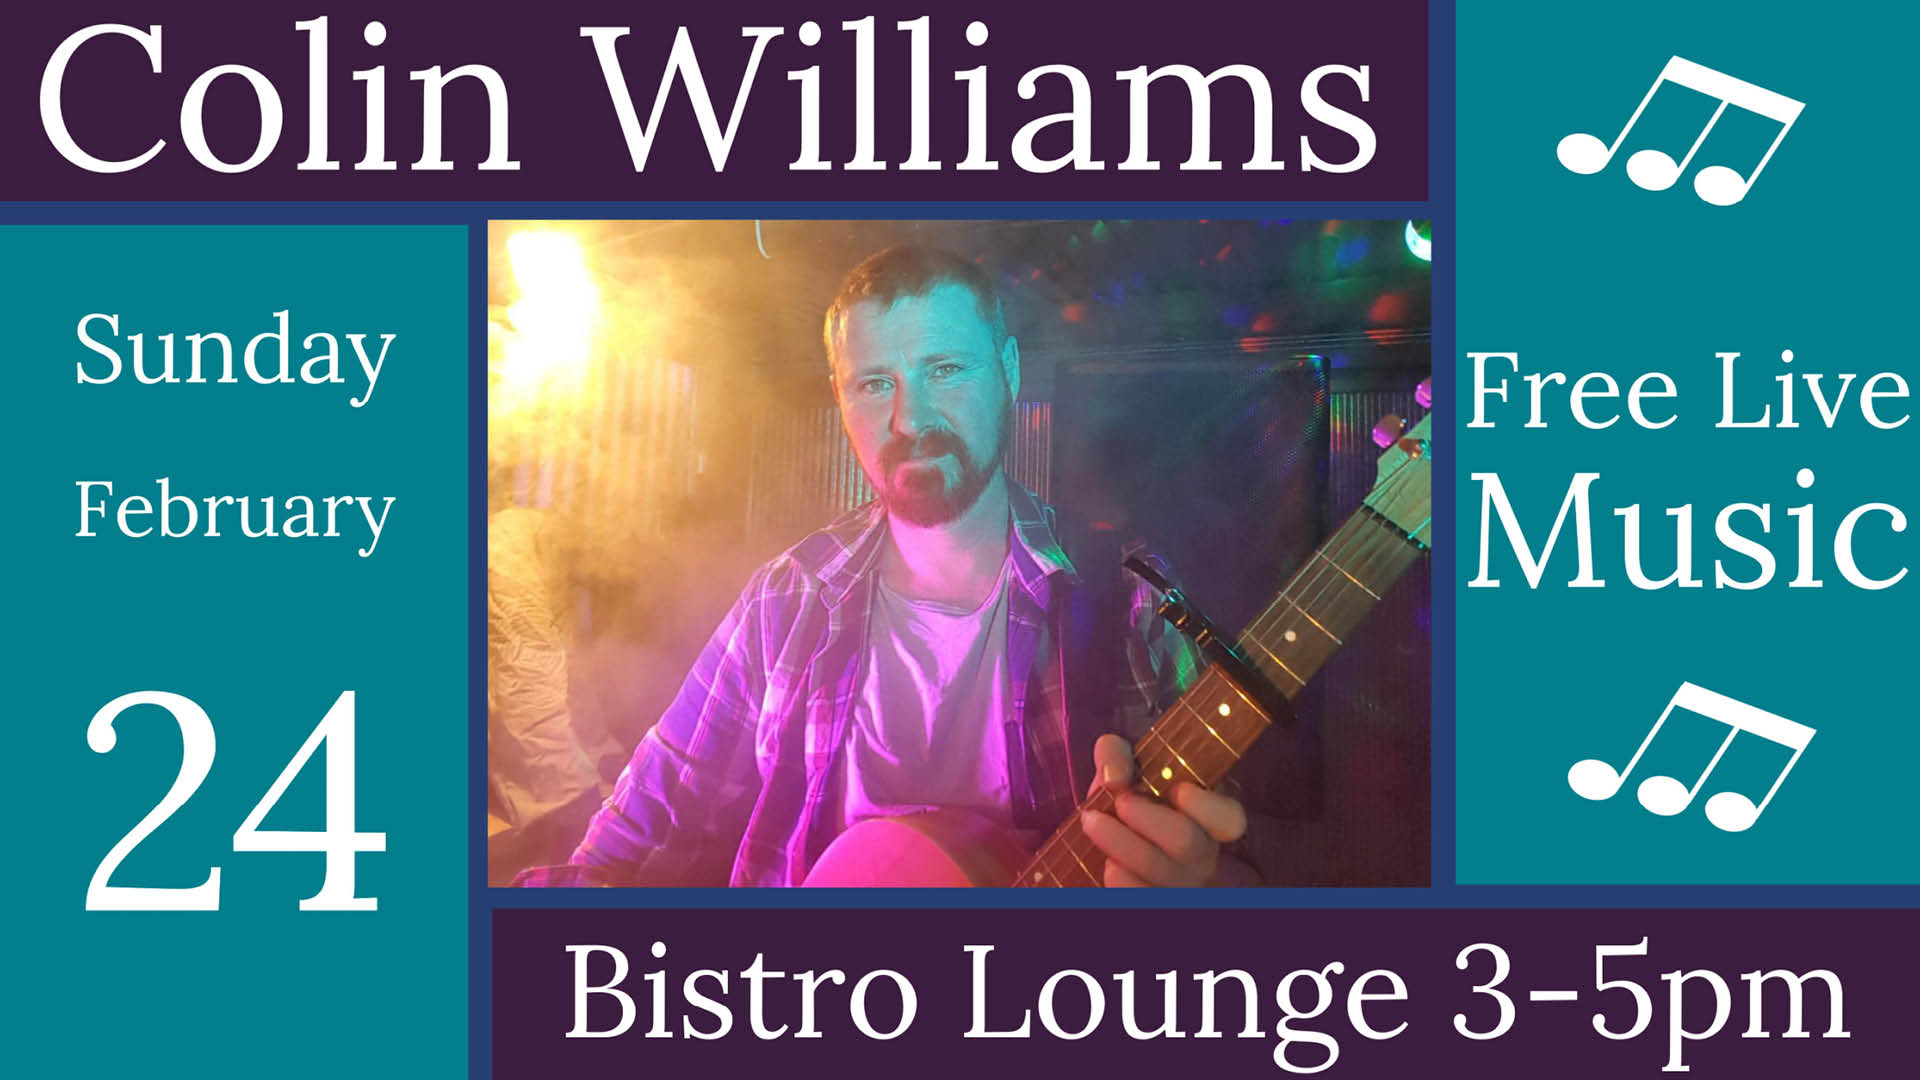 Colin Williams Live Music Sunday 24th February